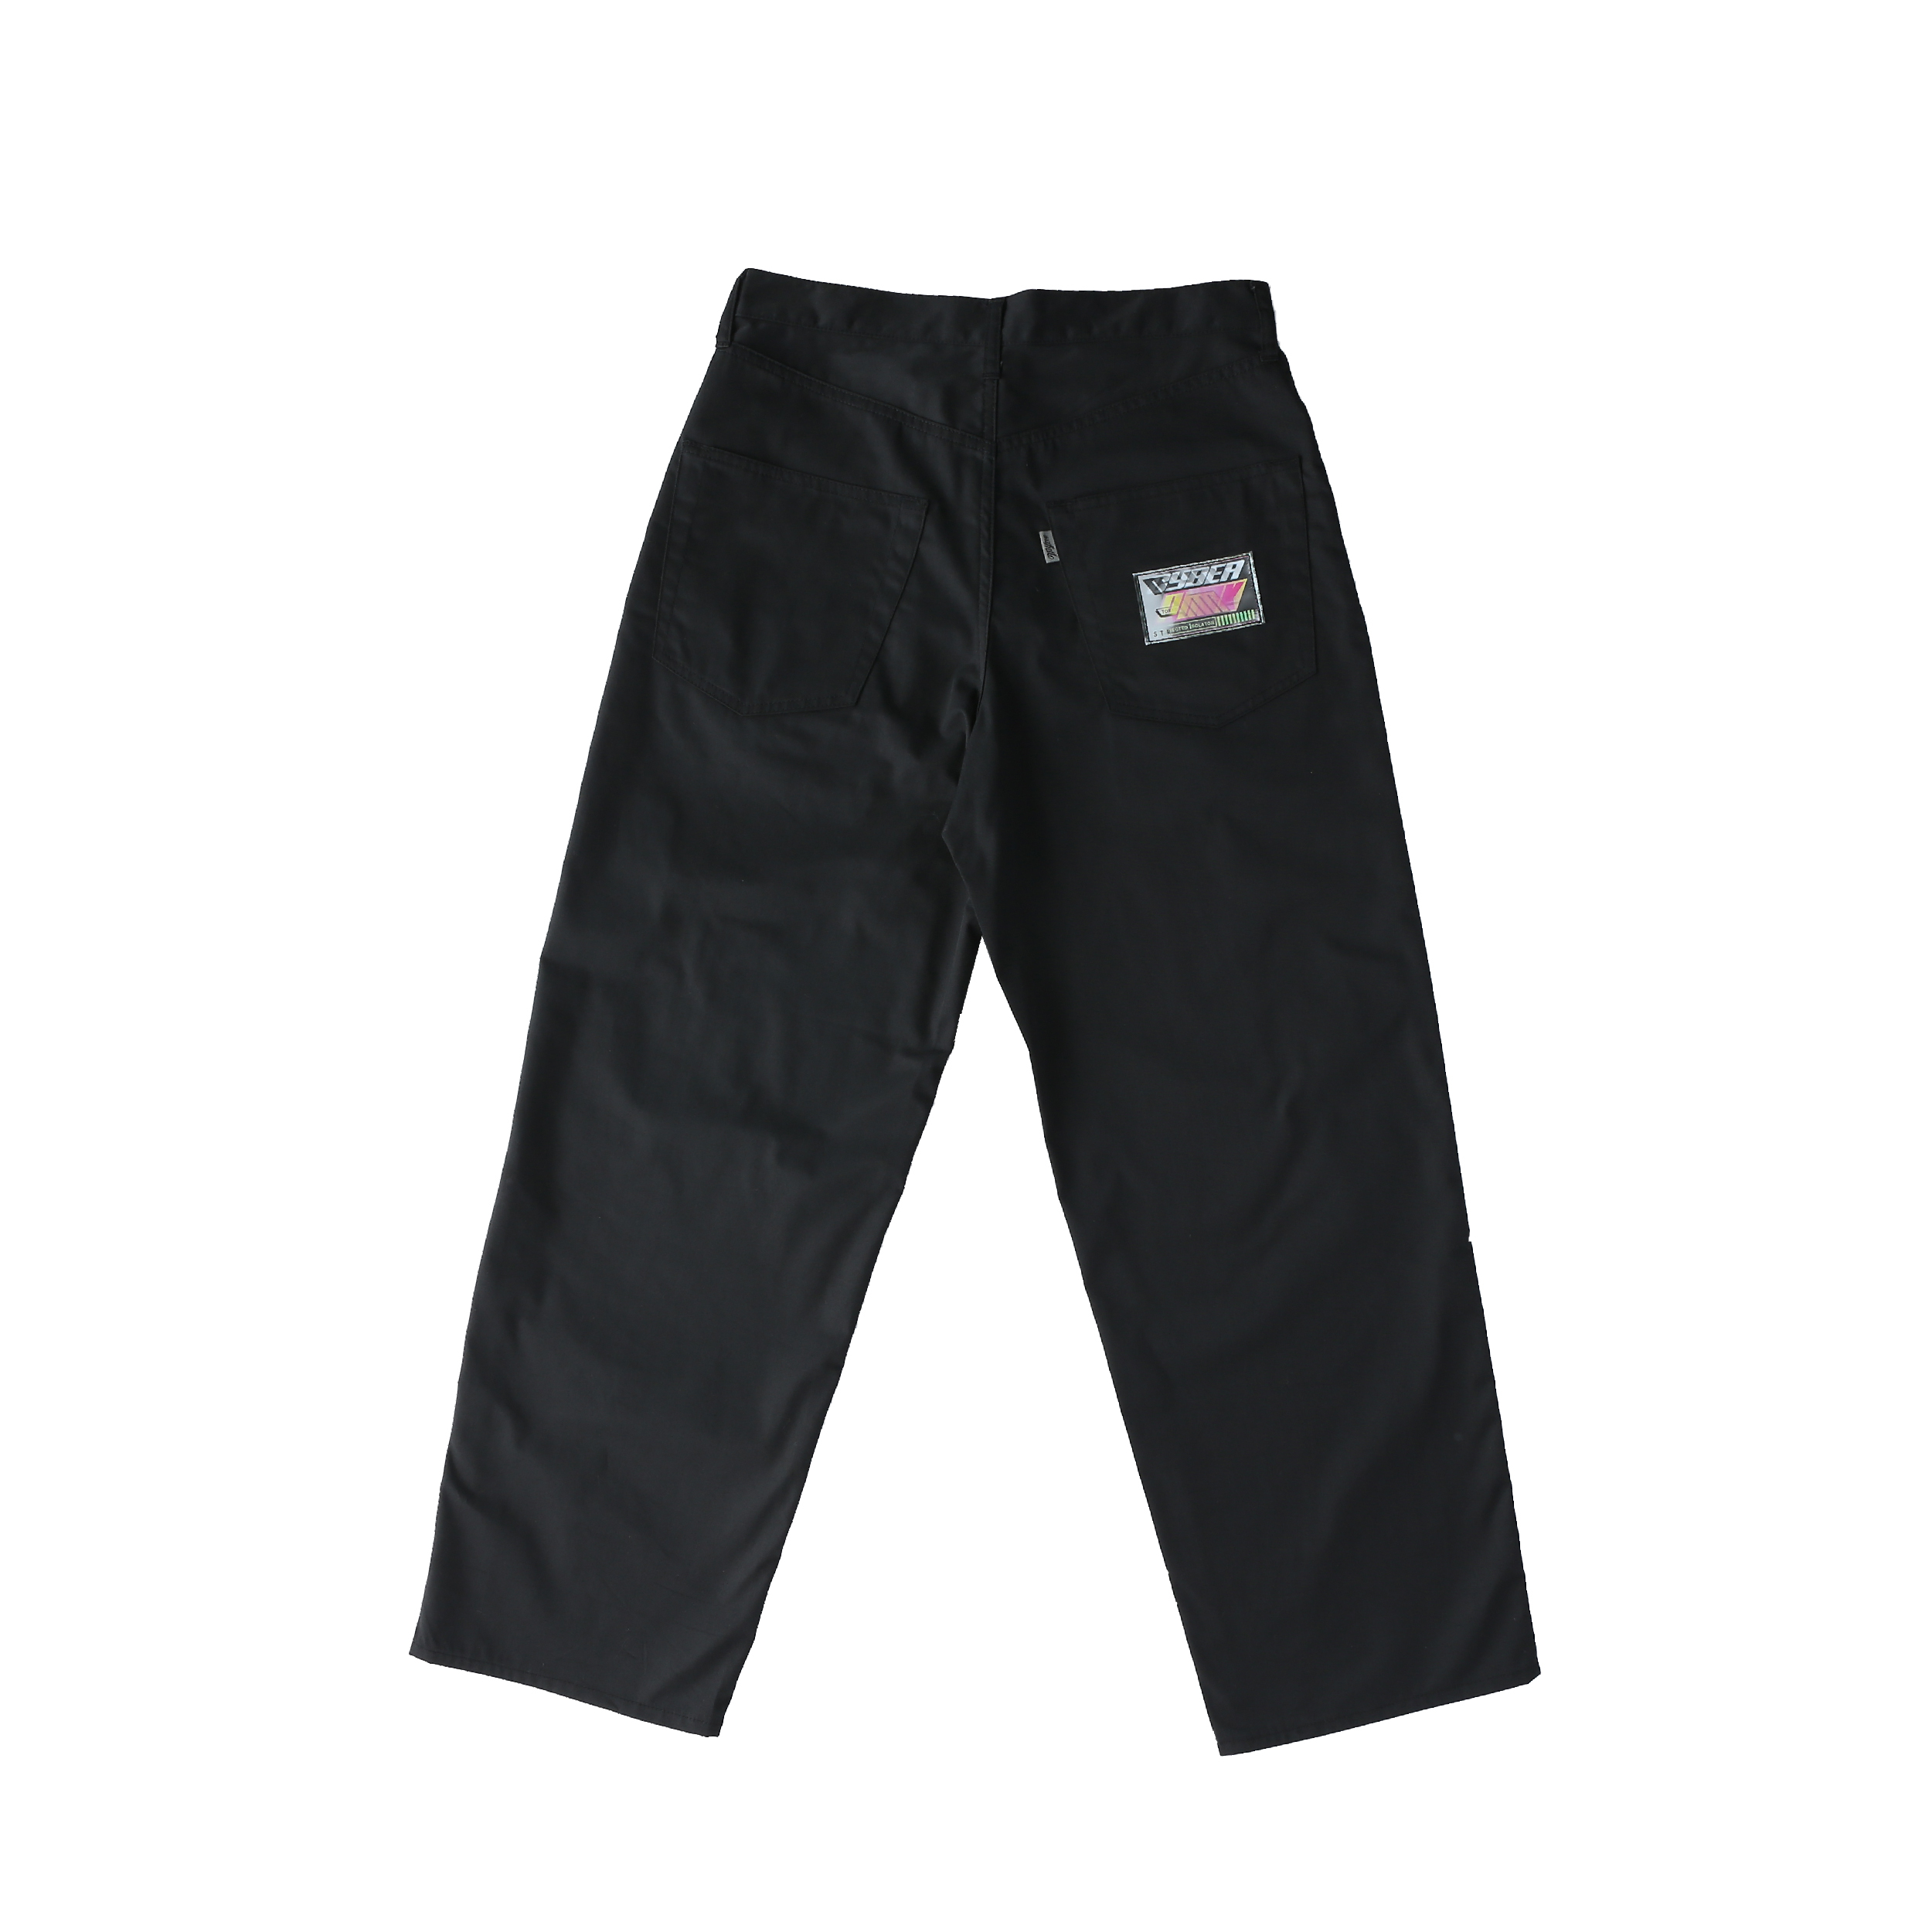 Wappen baggy pants / BLACK - 画像2